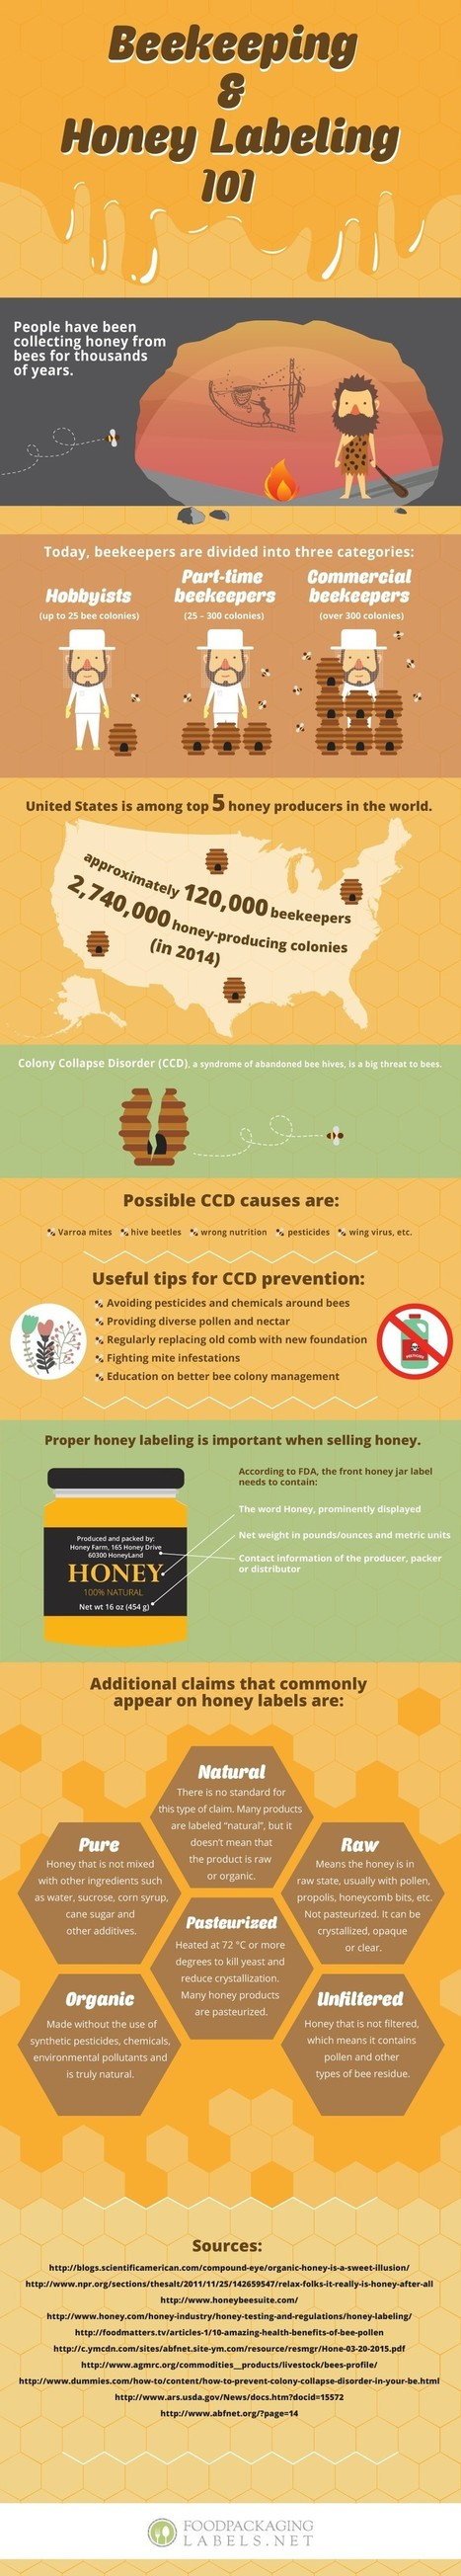 Beekeeping & Honey Labelling 101 - Everything about it | All Infographics | Scoop.it